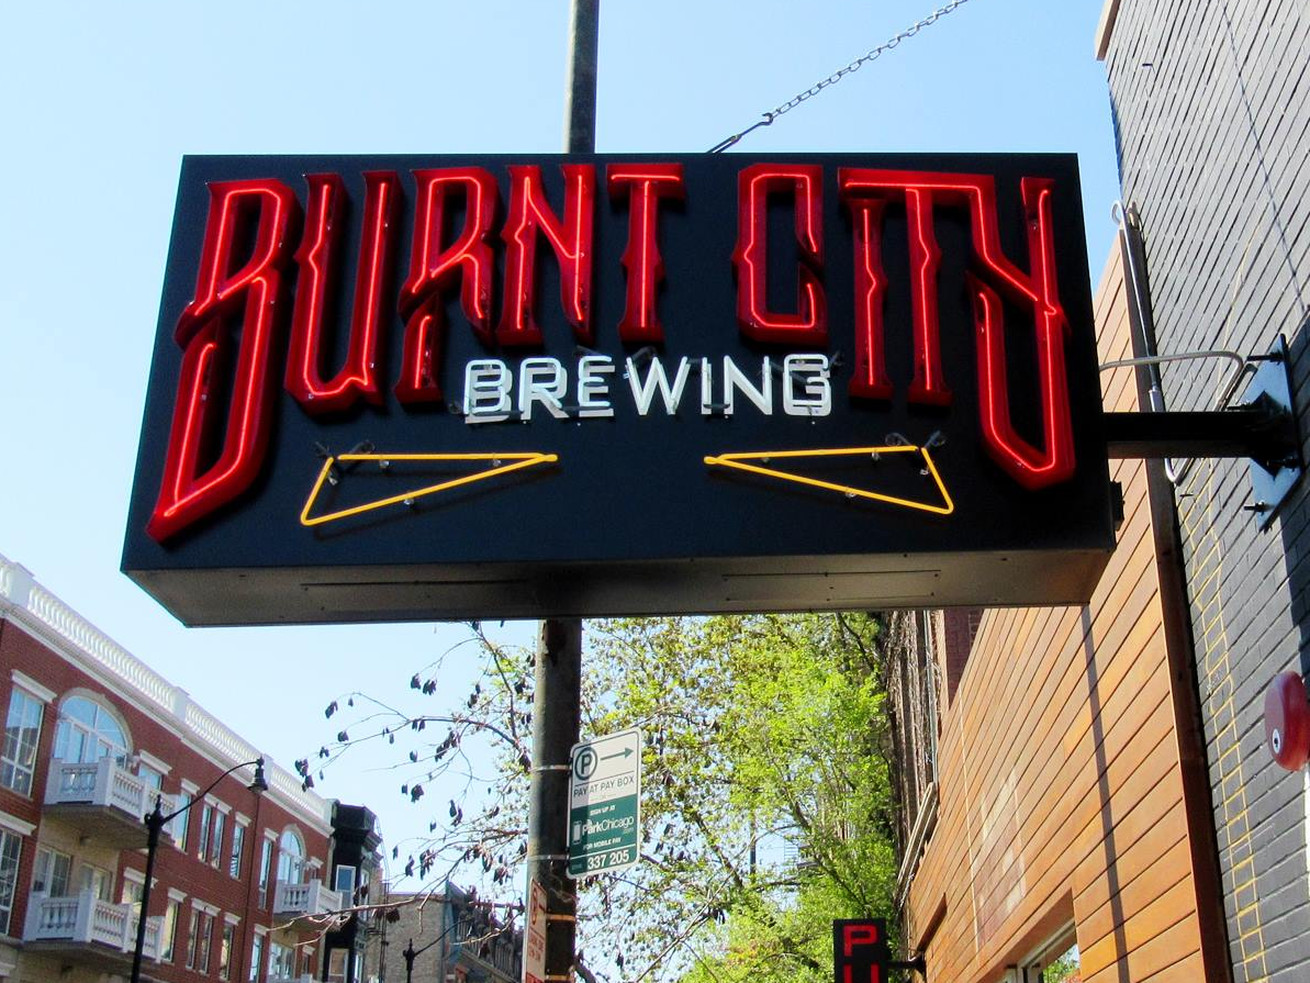 Burnt City Brewing's pub in Lincoln Park.